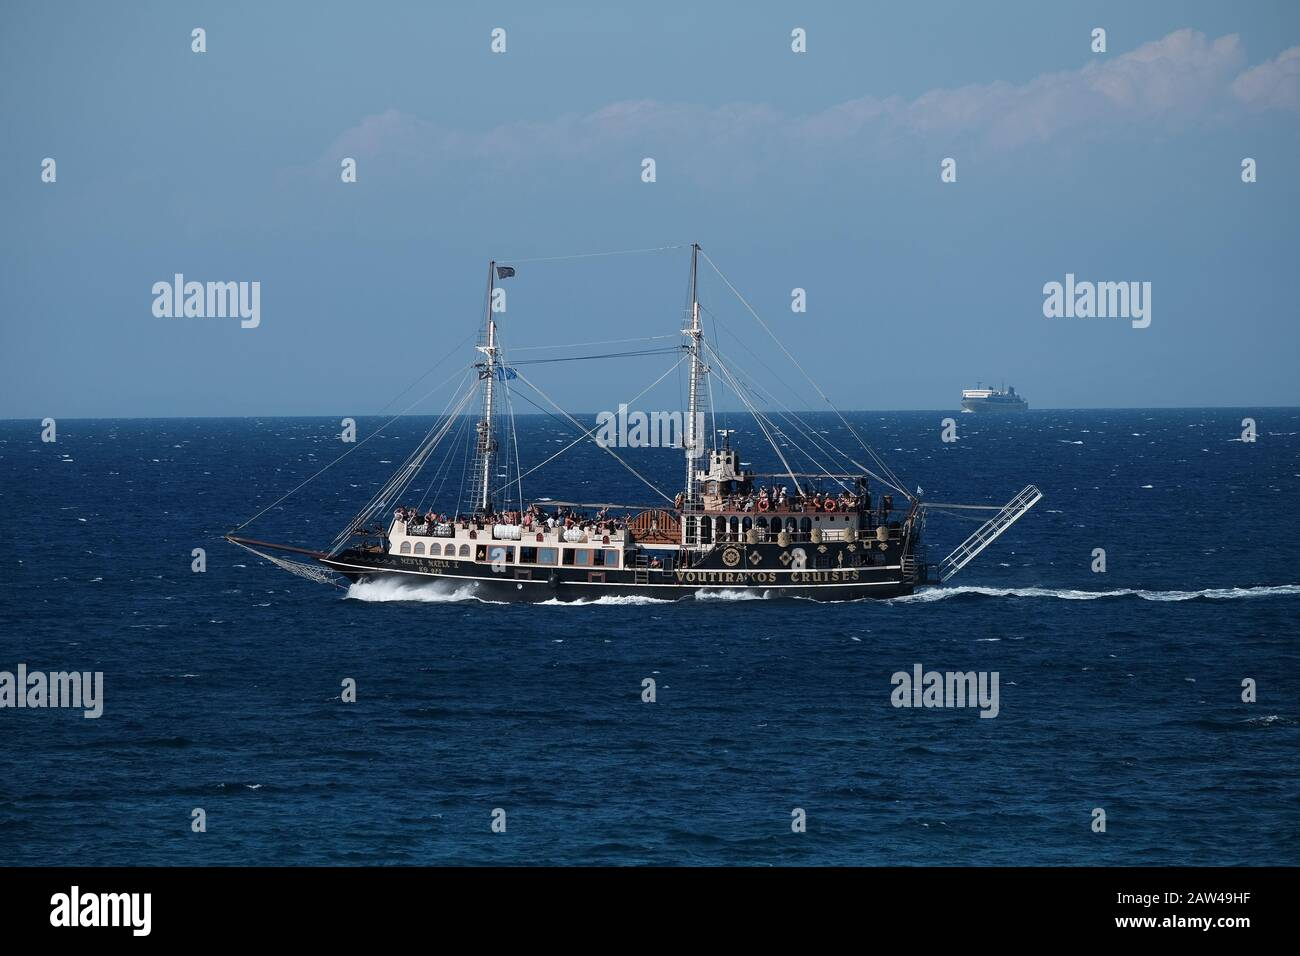 Voutirakos Cruises galleon themed pirate ship in the sea of Zakinthos Greece taking tourists on tours of the island. Stock Photo